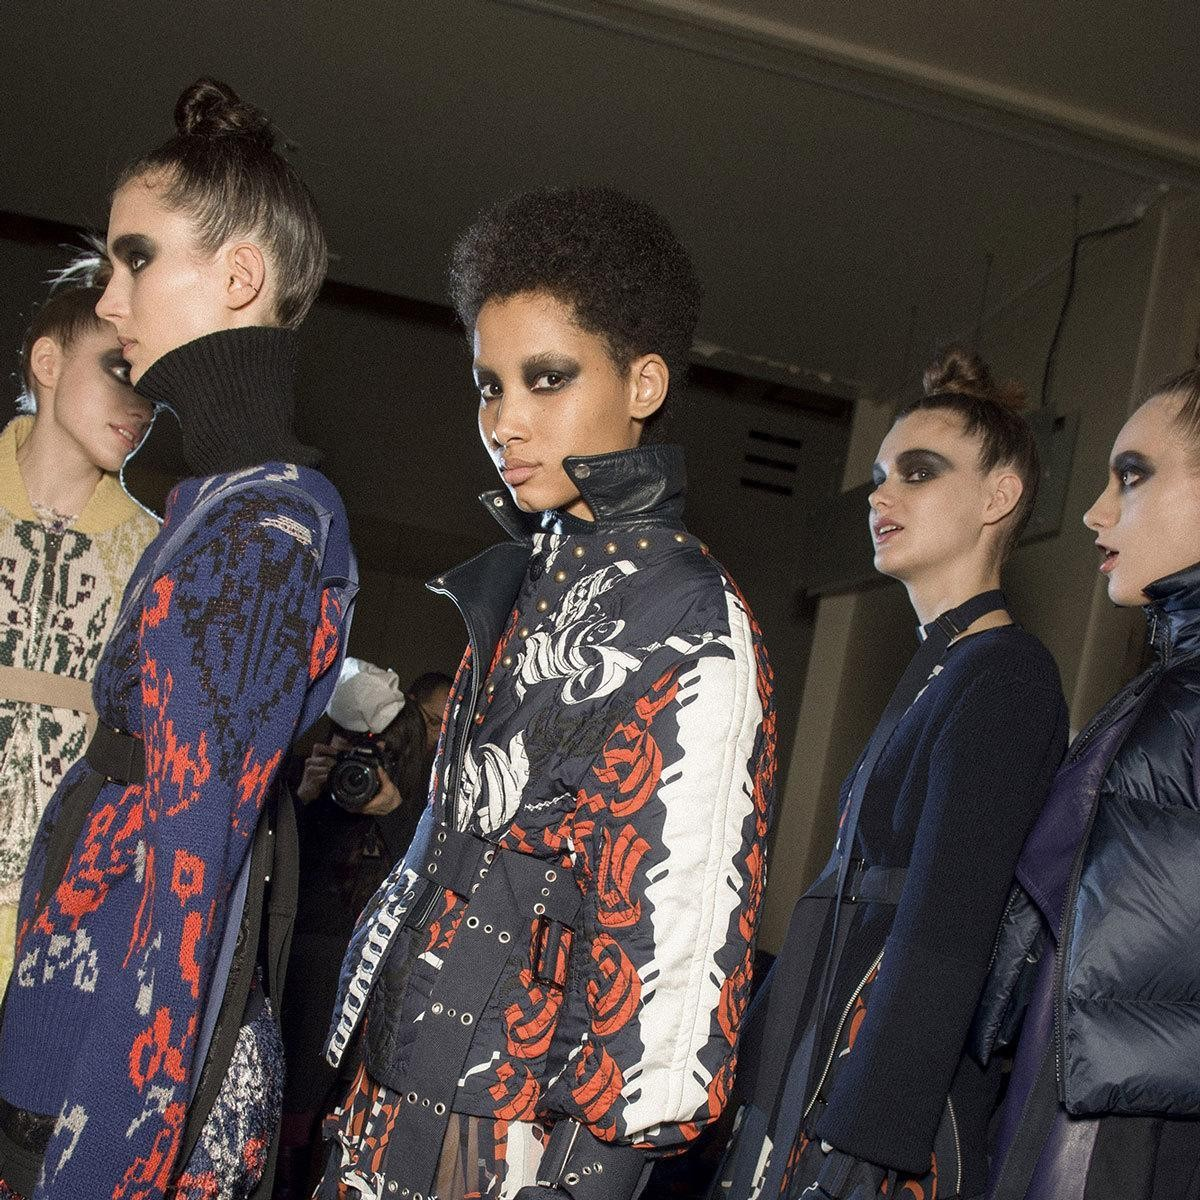 Exclusive Interviews Pictures More: The Sacai Century: An Exclusive Interview With Chitose Abe